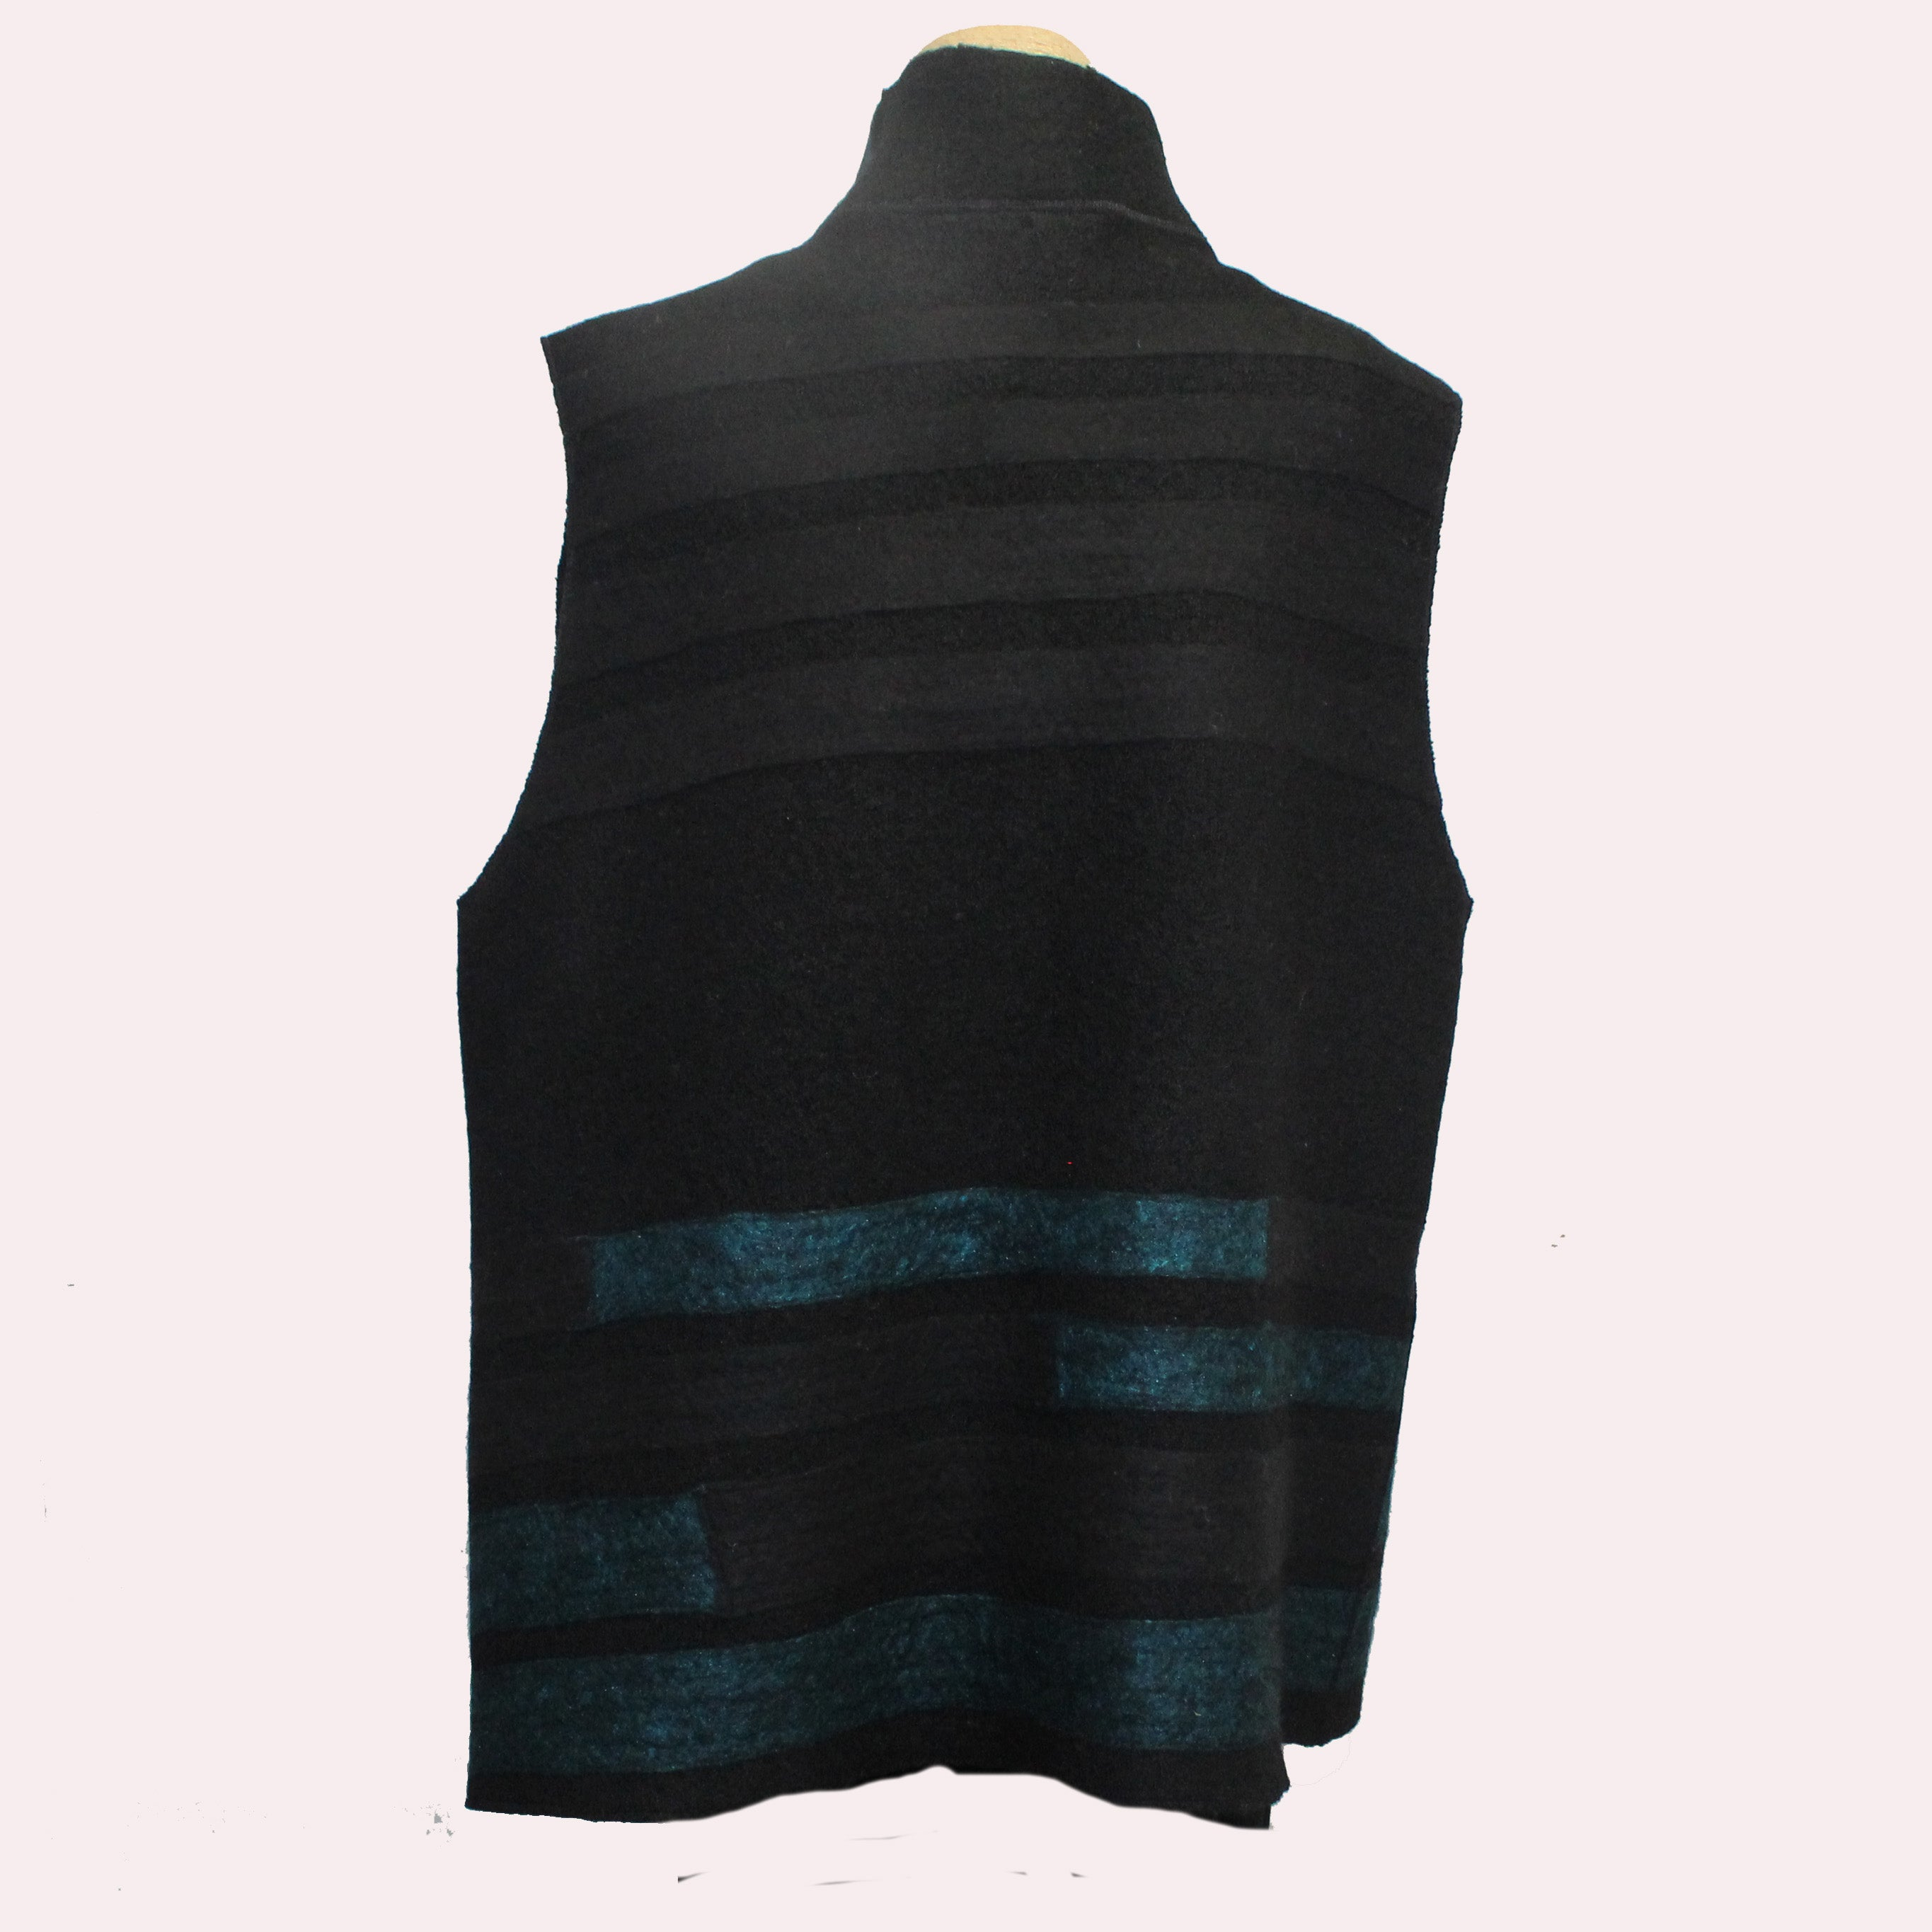 Maggy Pavlou Vest, Black/Teal, L